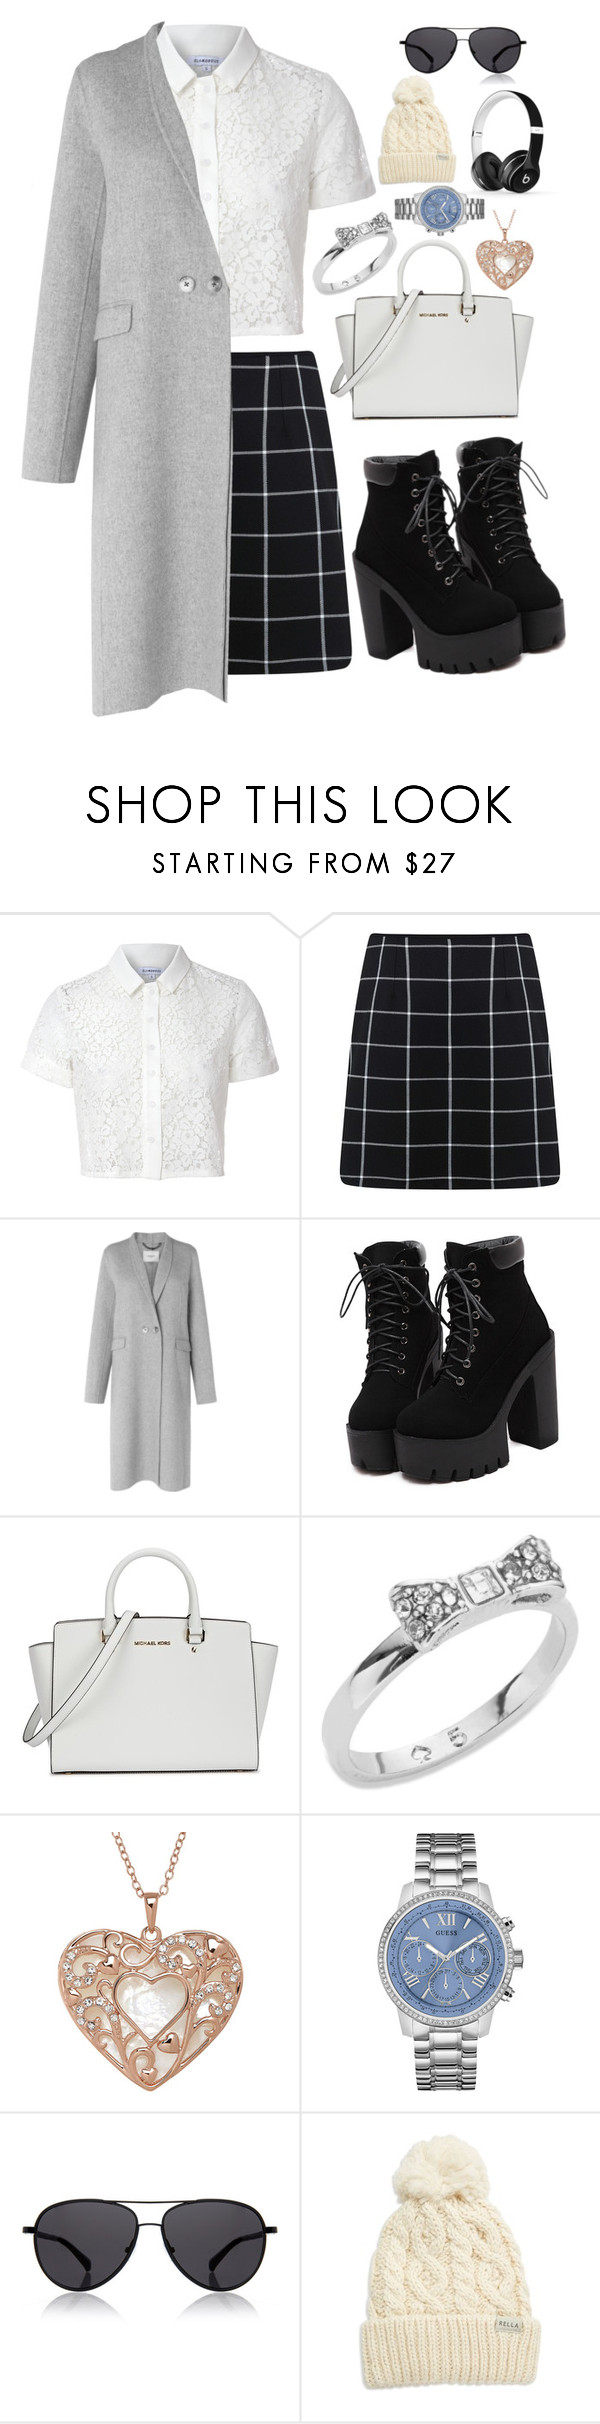 """#64"" by noimagination ❤ liked on Polyvore featuring Glamorous, Miss Selfridge, L.K.Bennett, Michael Kors, Kate Spade, GUESS, The Row, Rella and Beats by Dr. Dre"